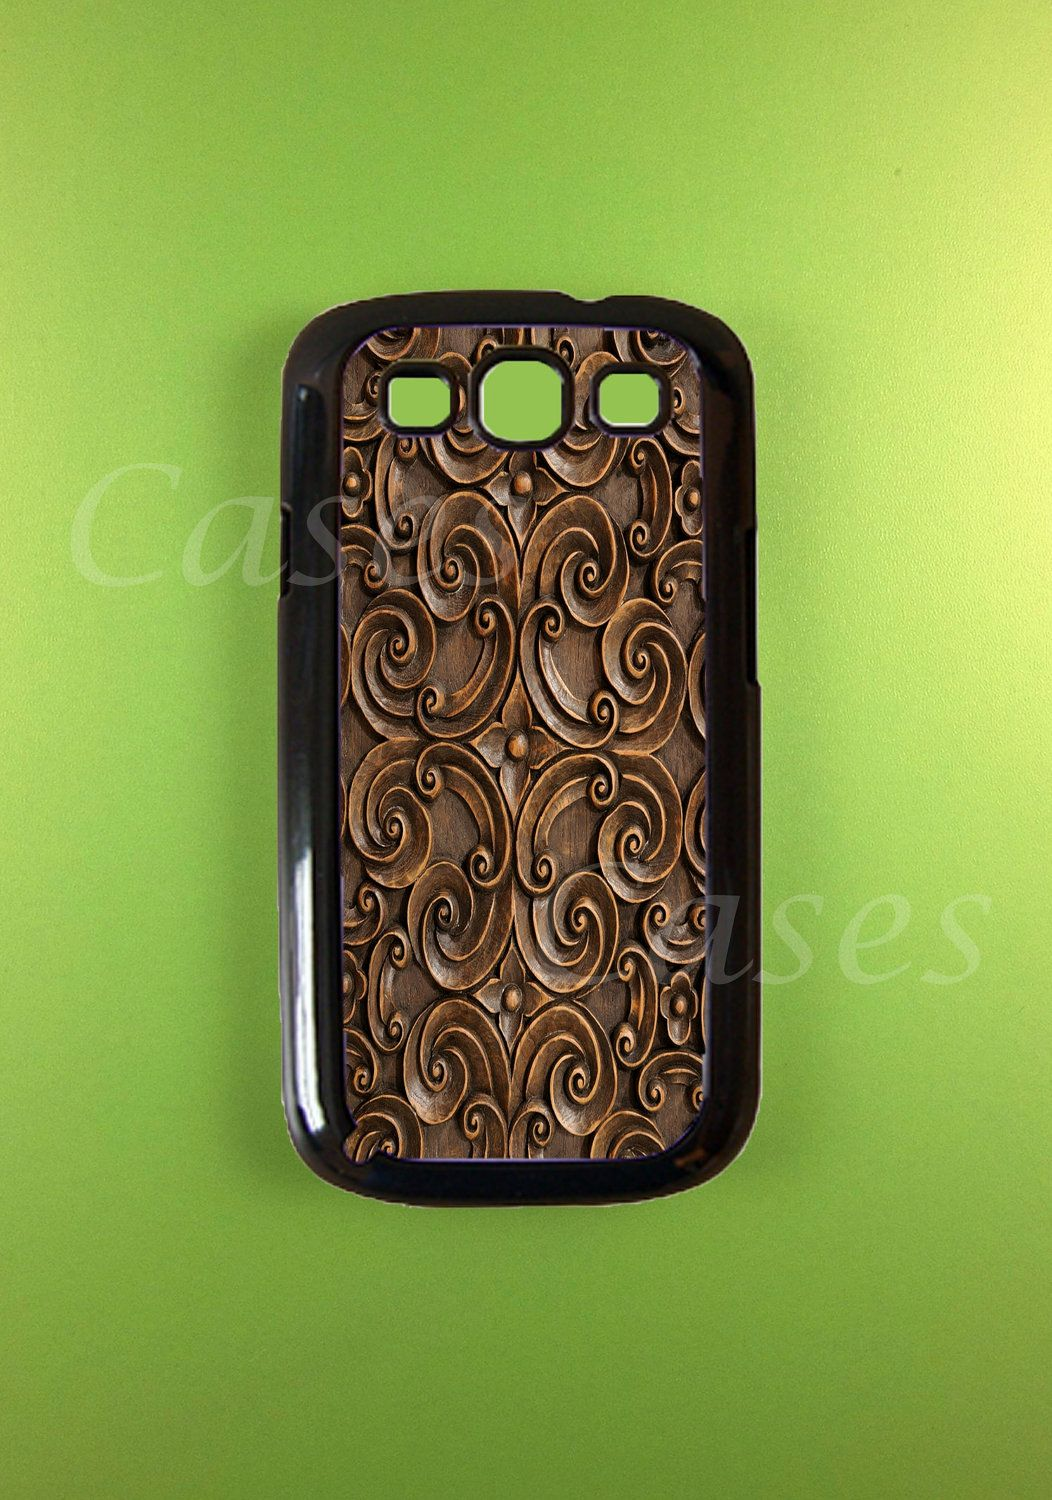 Samsung Galaxy S3 Cases - Carved Wood Design. $14.99, via Etsy.